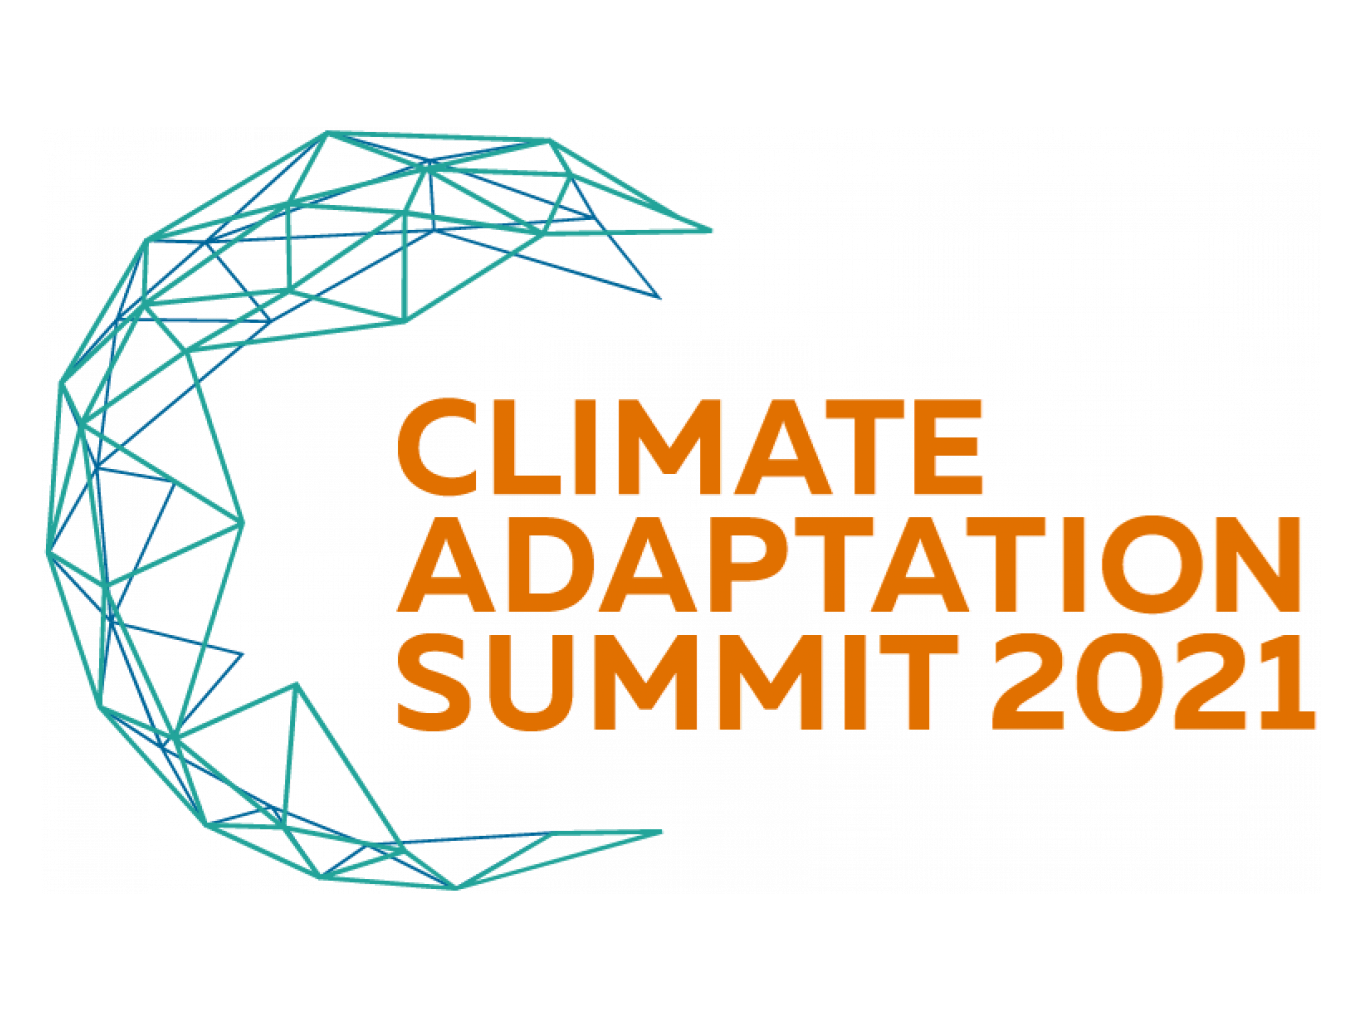 Cimate Adaptation Summit 2021